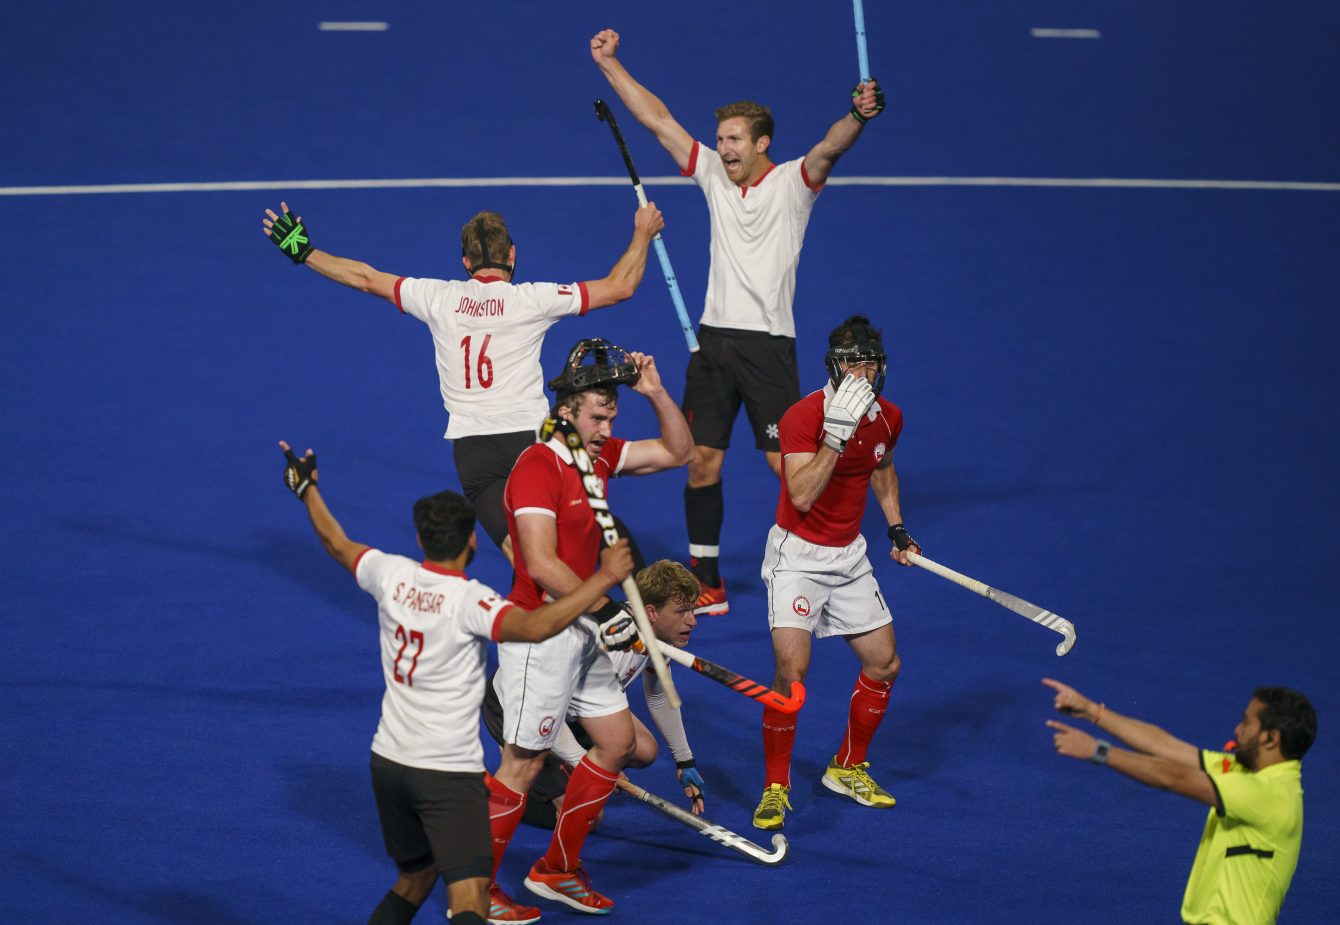 Men's Field Hockey celebrates advancing to the Lima 2019 gold medal final